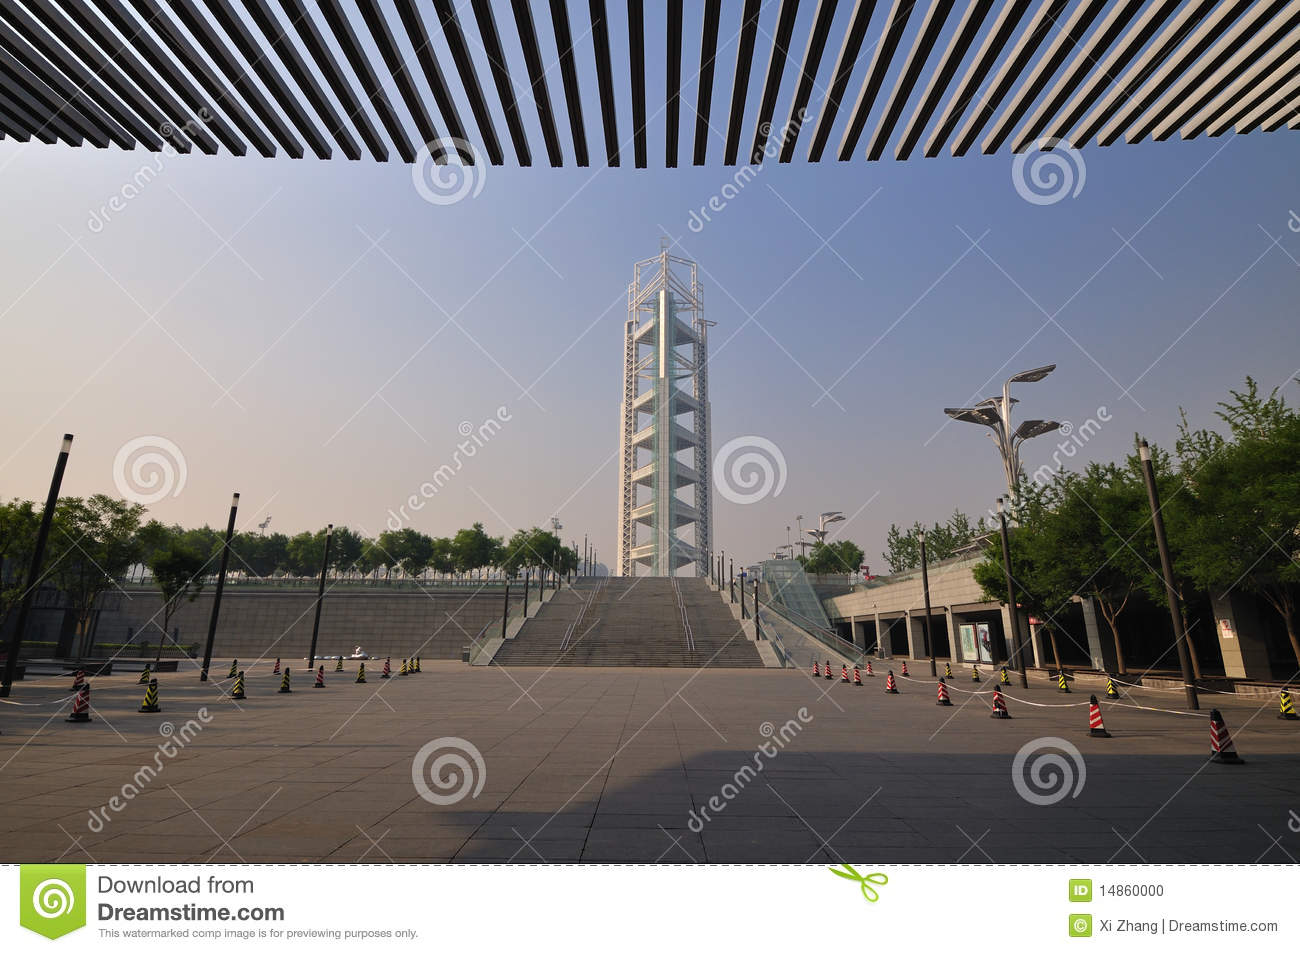 China Olympic Park in Beijing